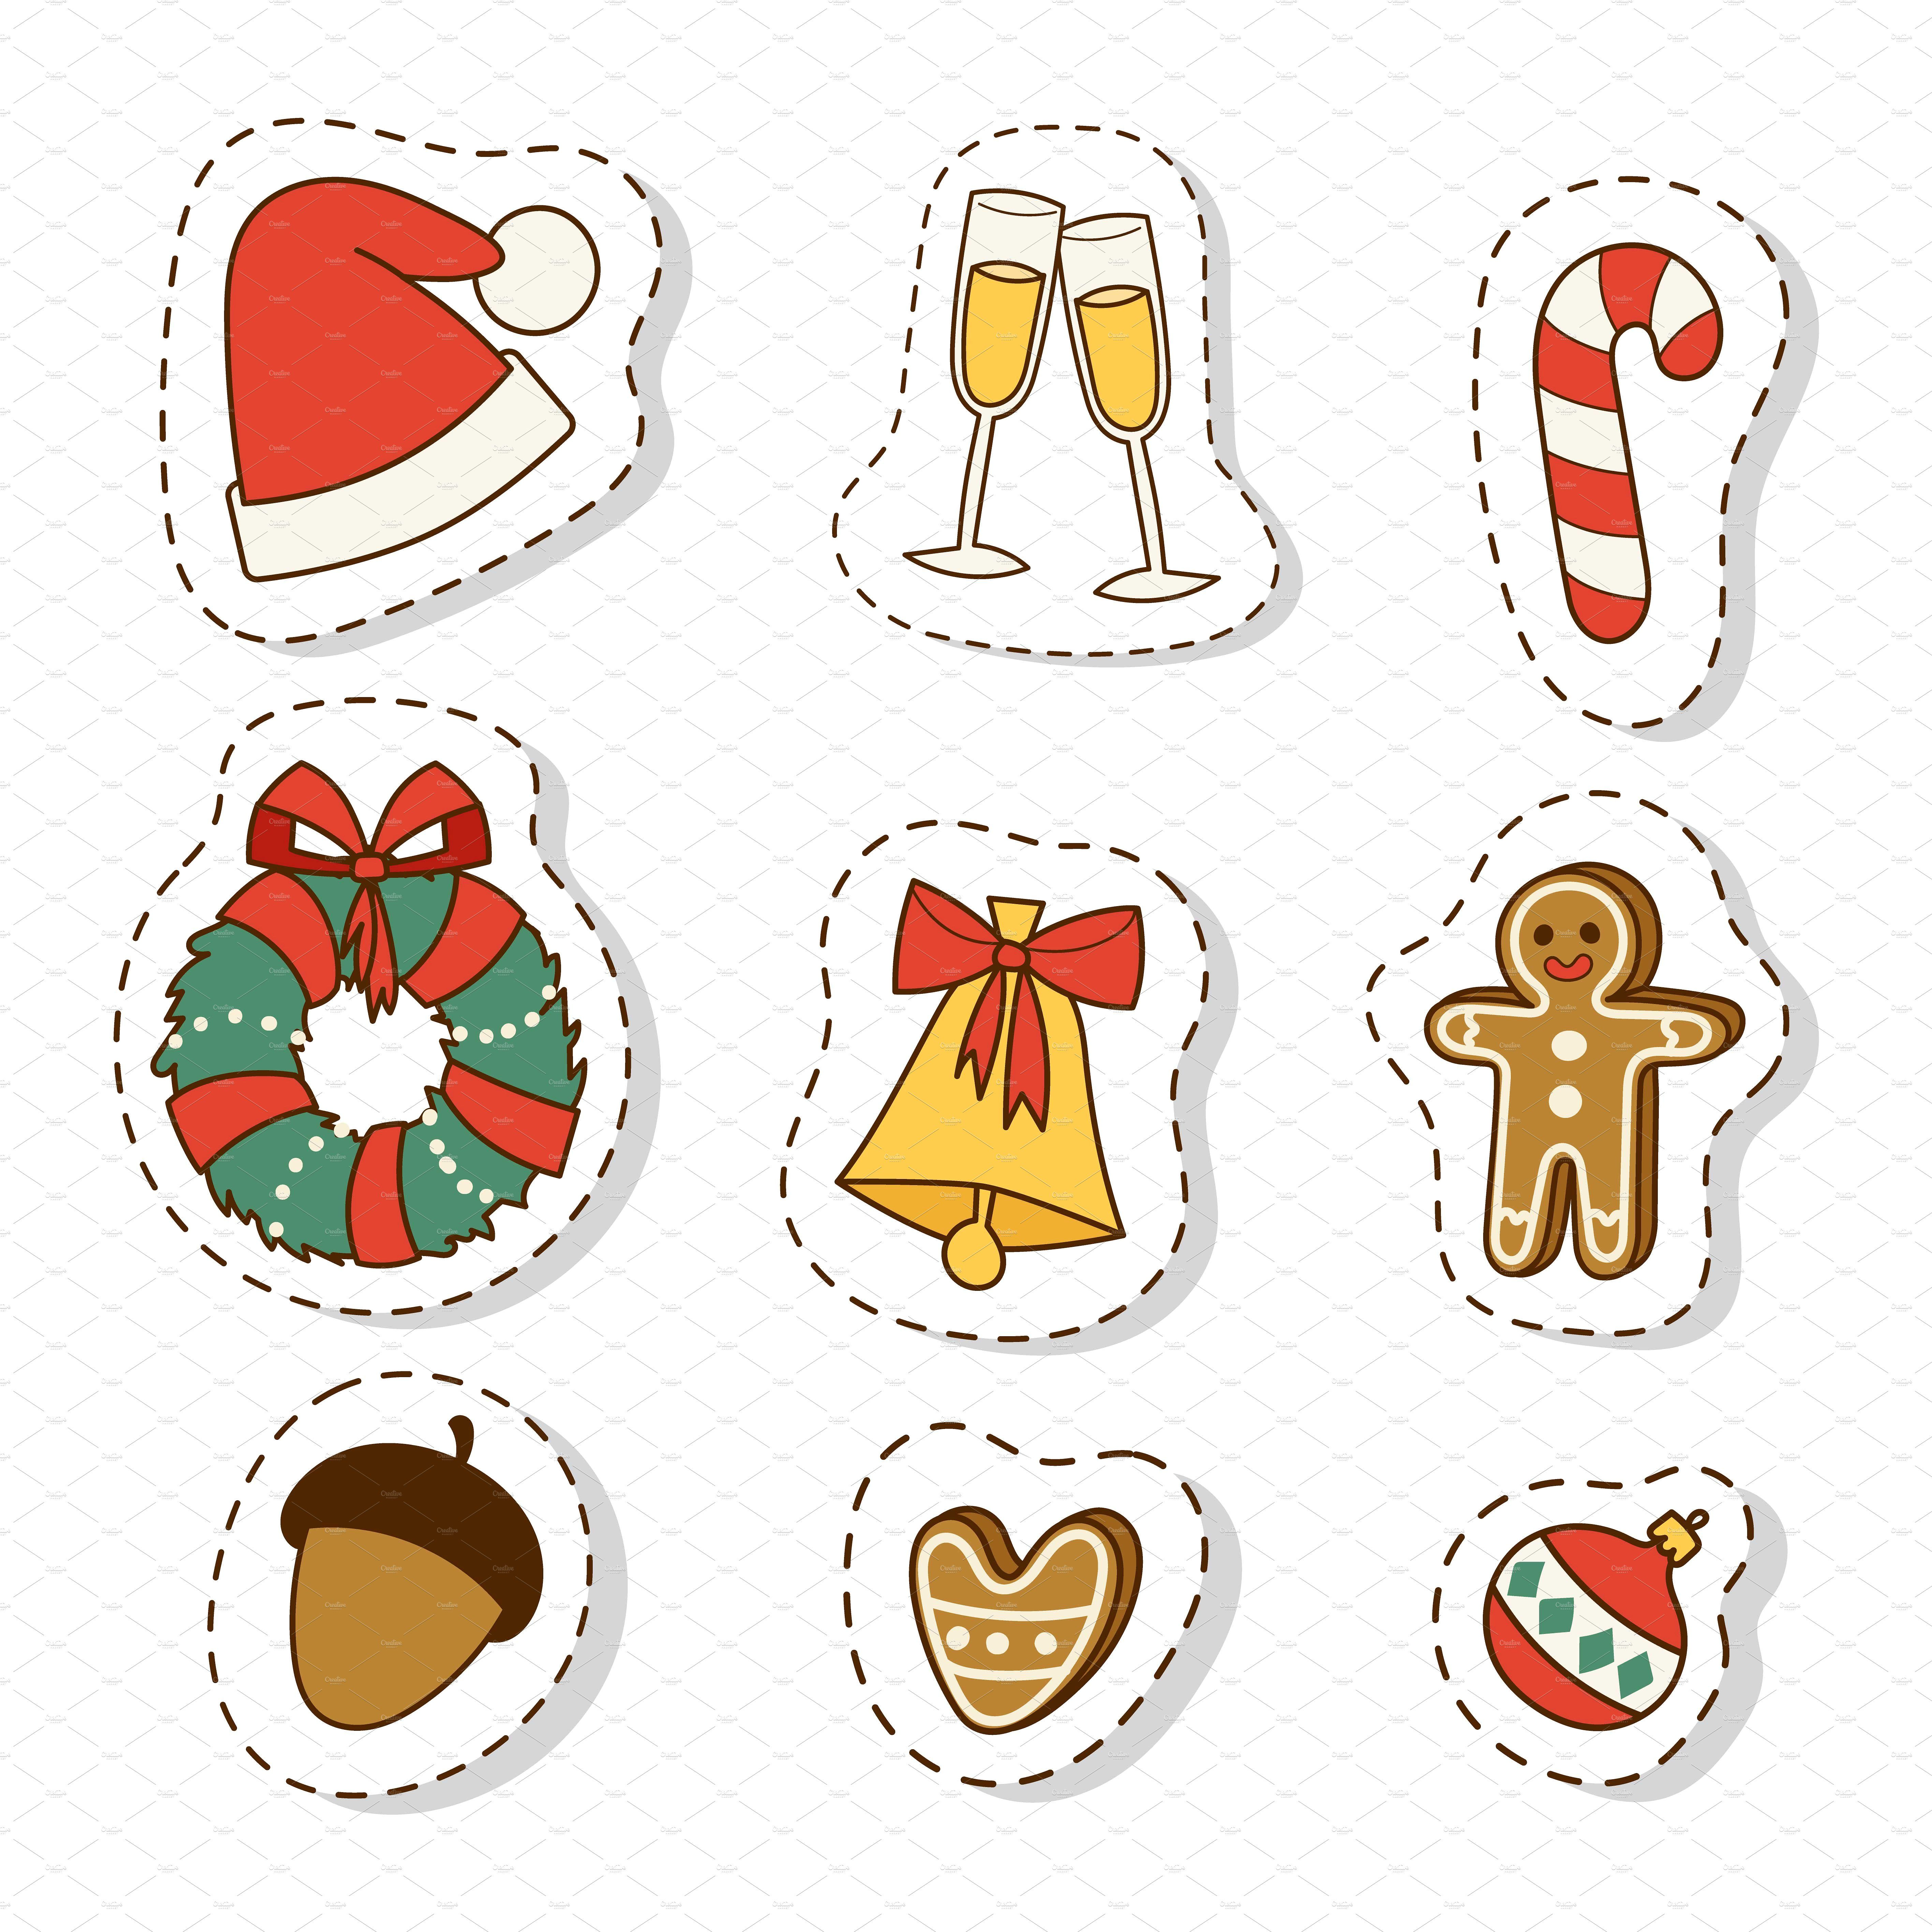 Christmas icons symbols vector by Vectorstockerland on